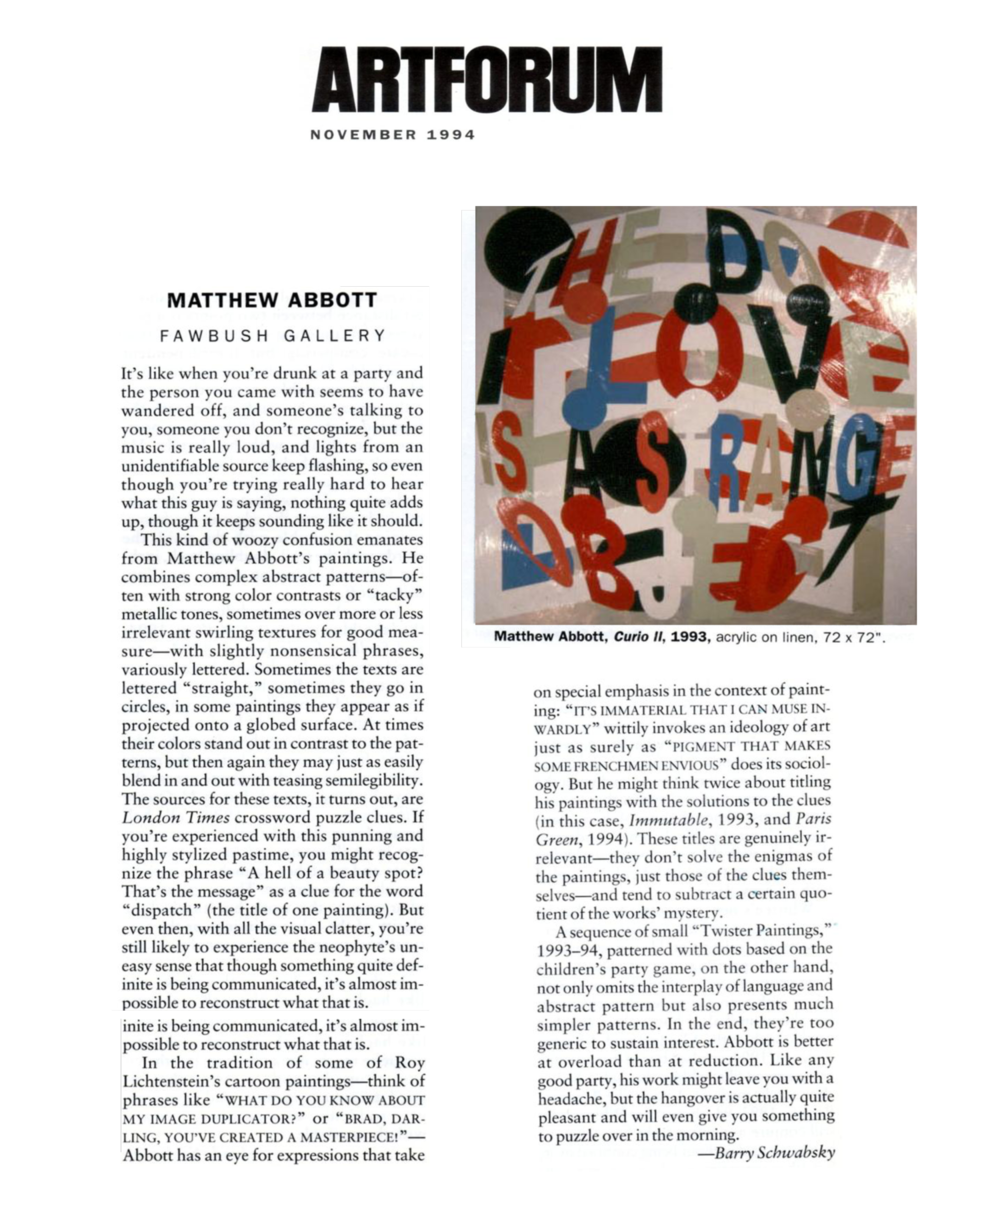 Artforum_November-1994.png